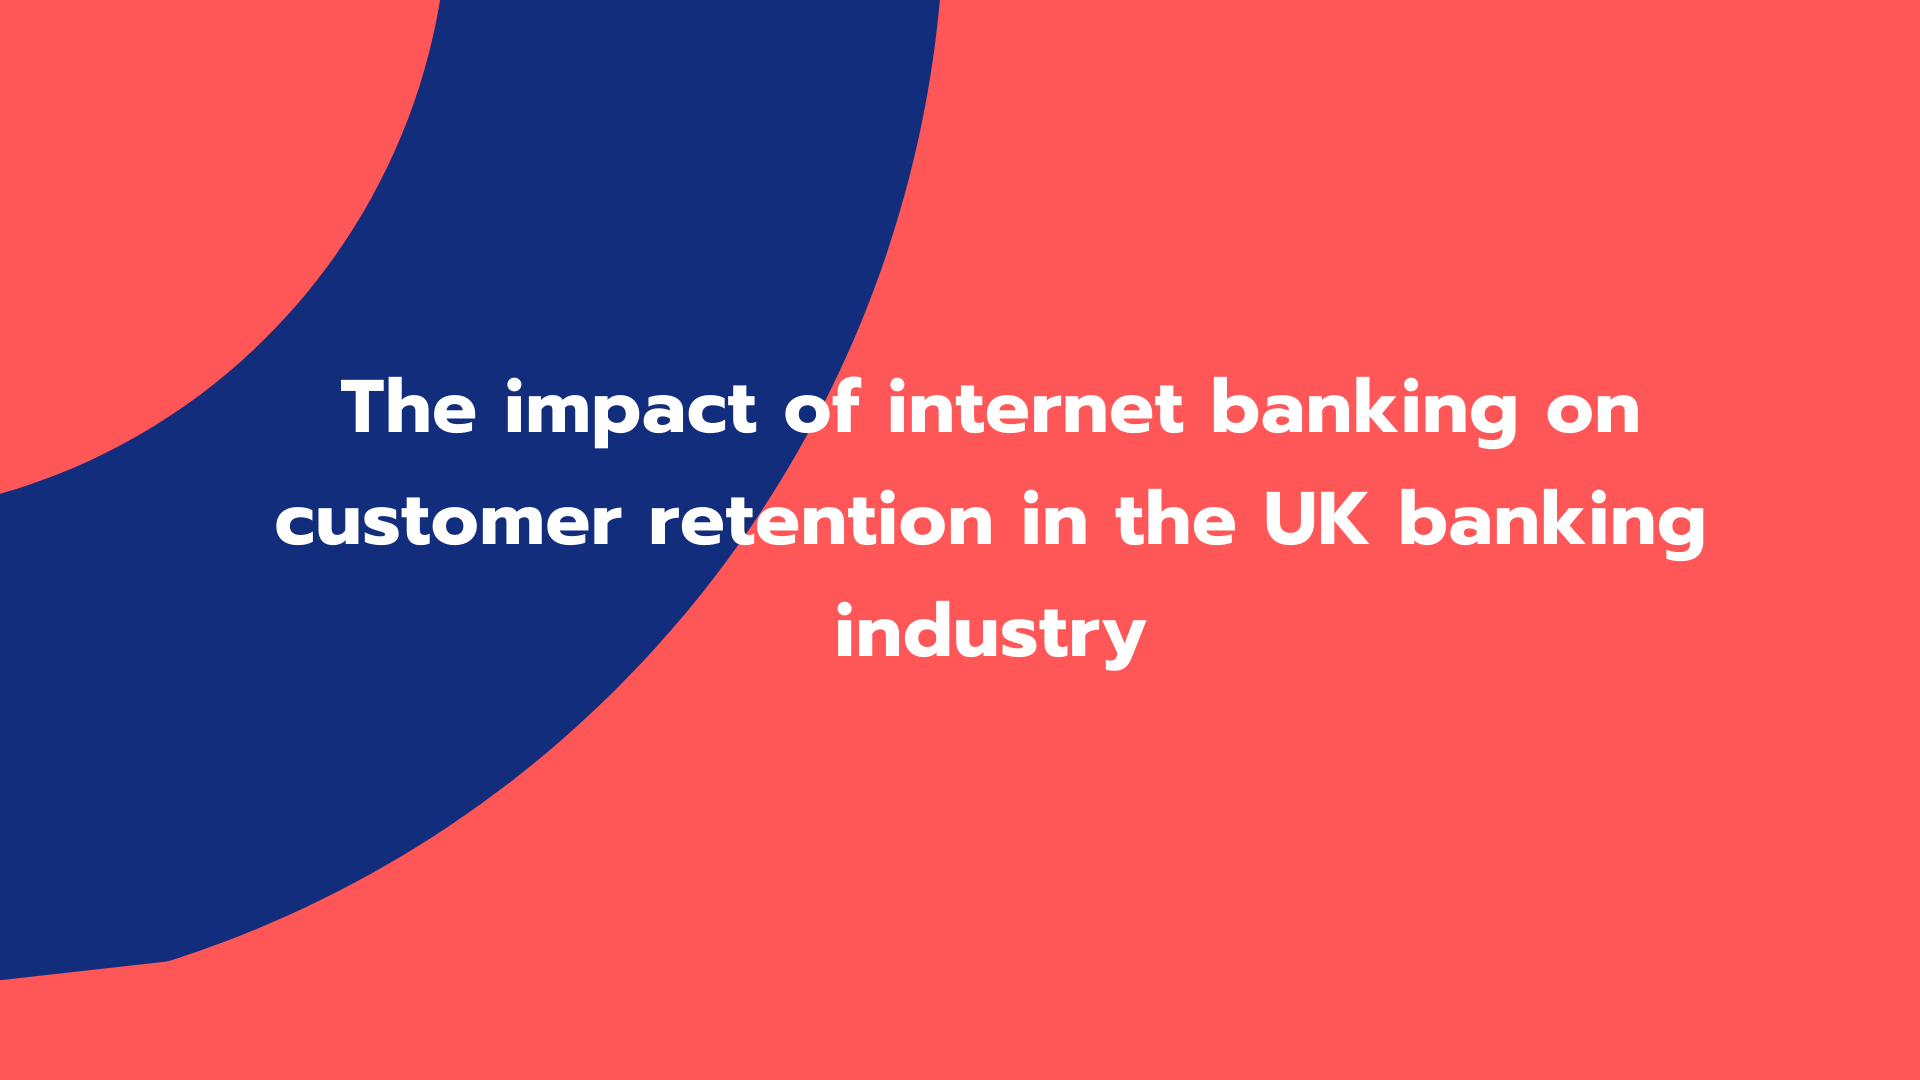 The impact of internet banking on customer retention in the UK banking industry